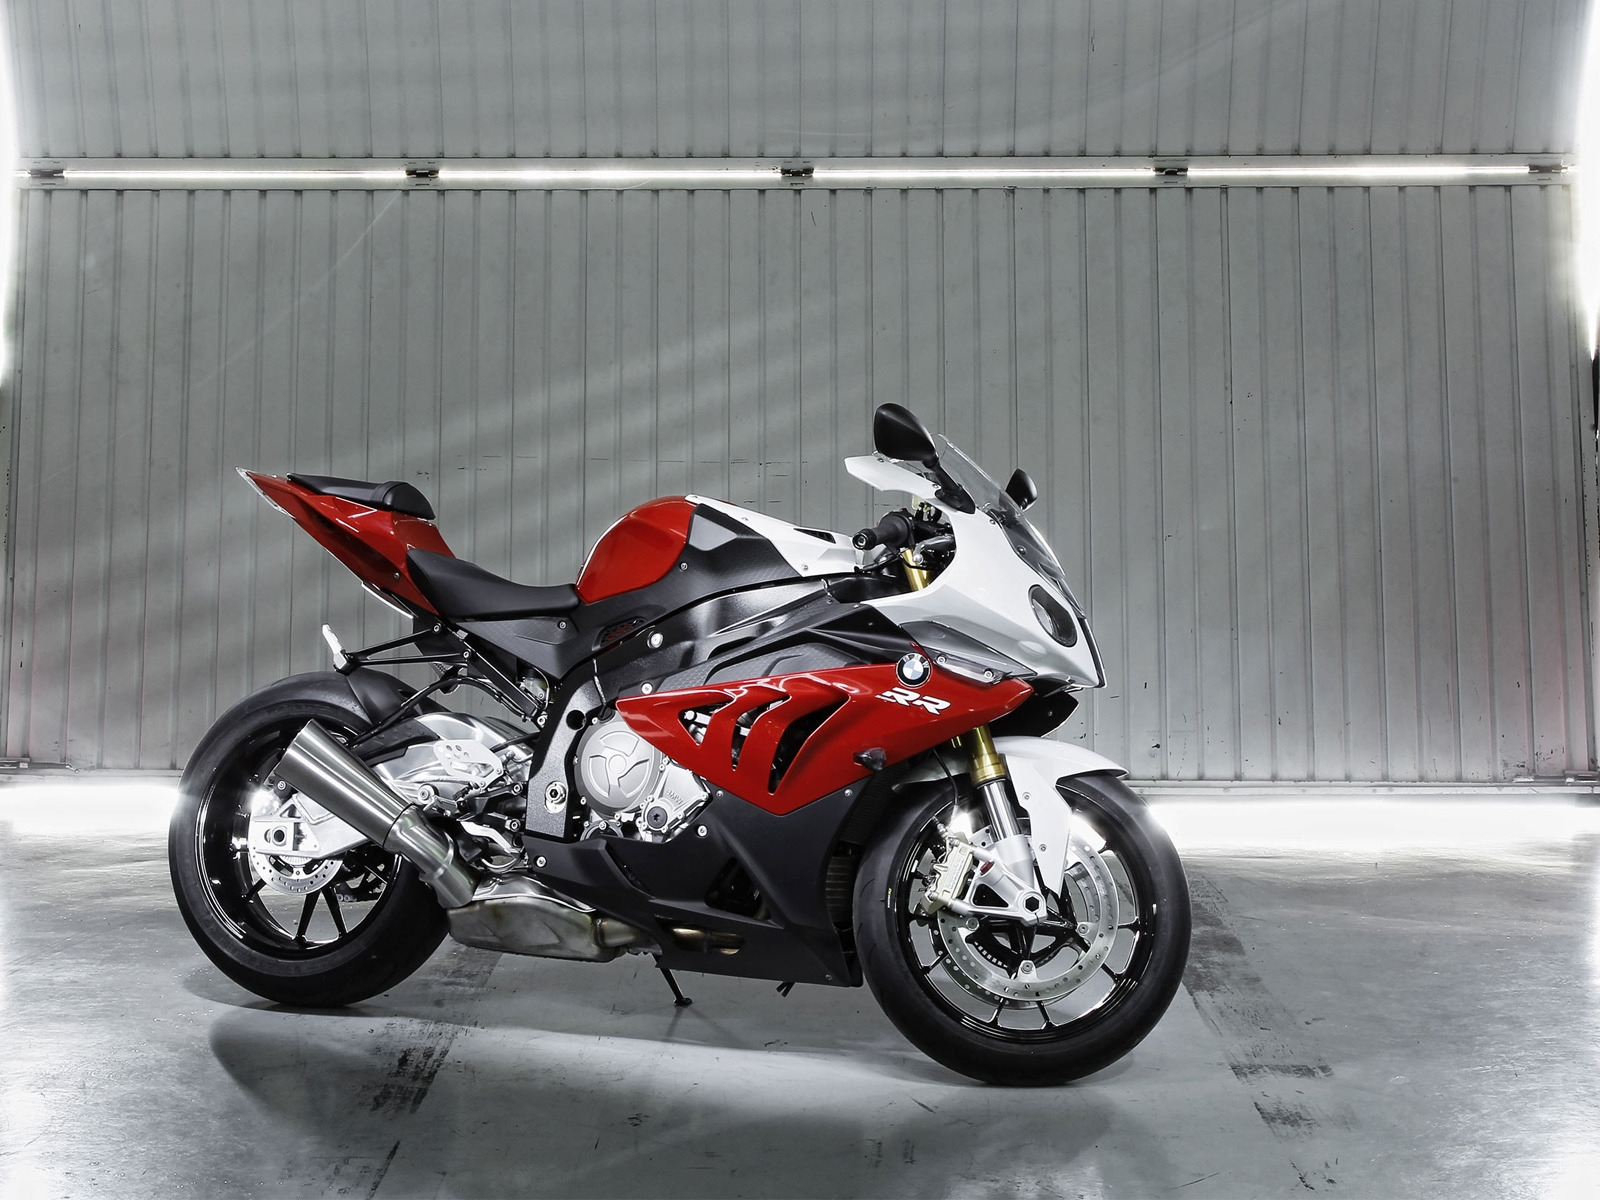 BMW S 1000 2012 for 1600 x 1200 resolution